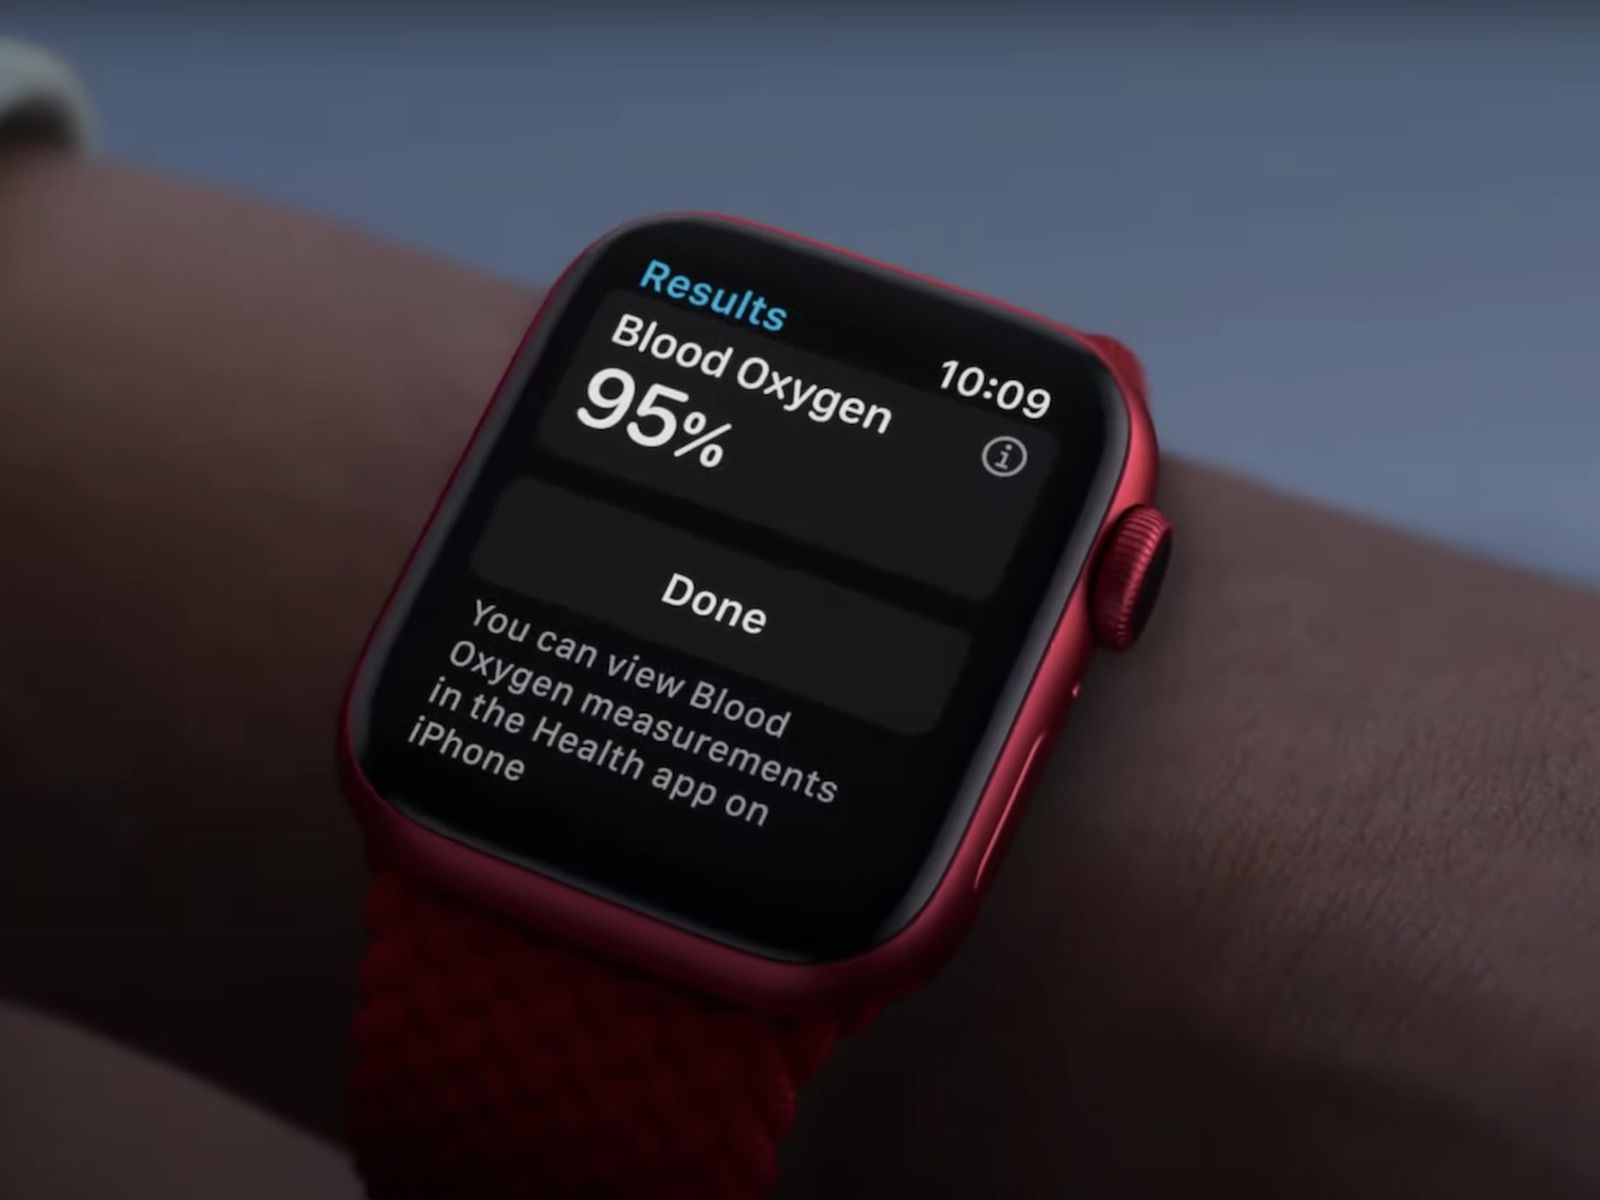 Apple Watch Series 6 Blood Oxygen Monitoring Available in Most Countries  Worldwide - MacRumors